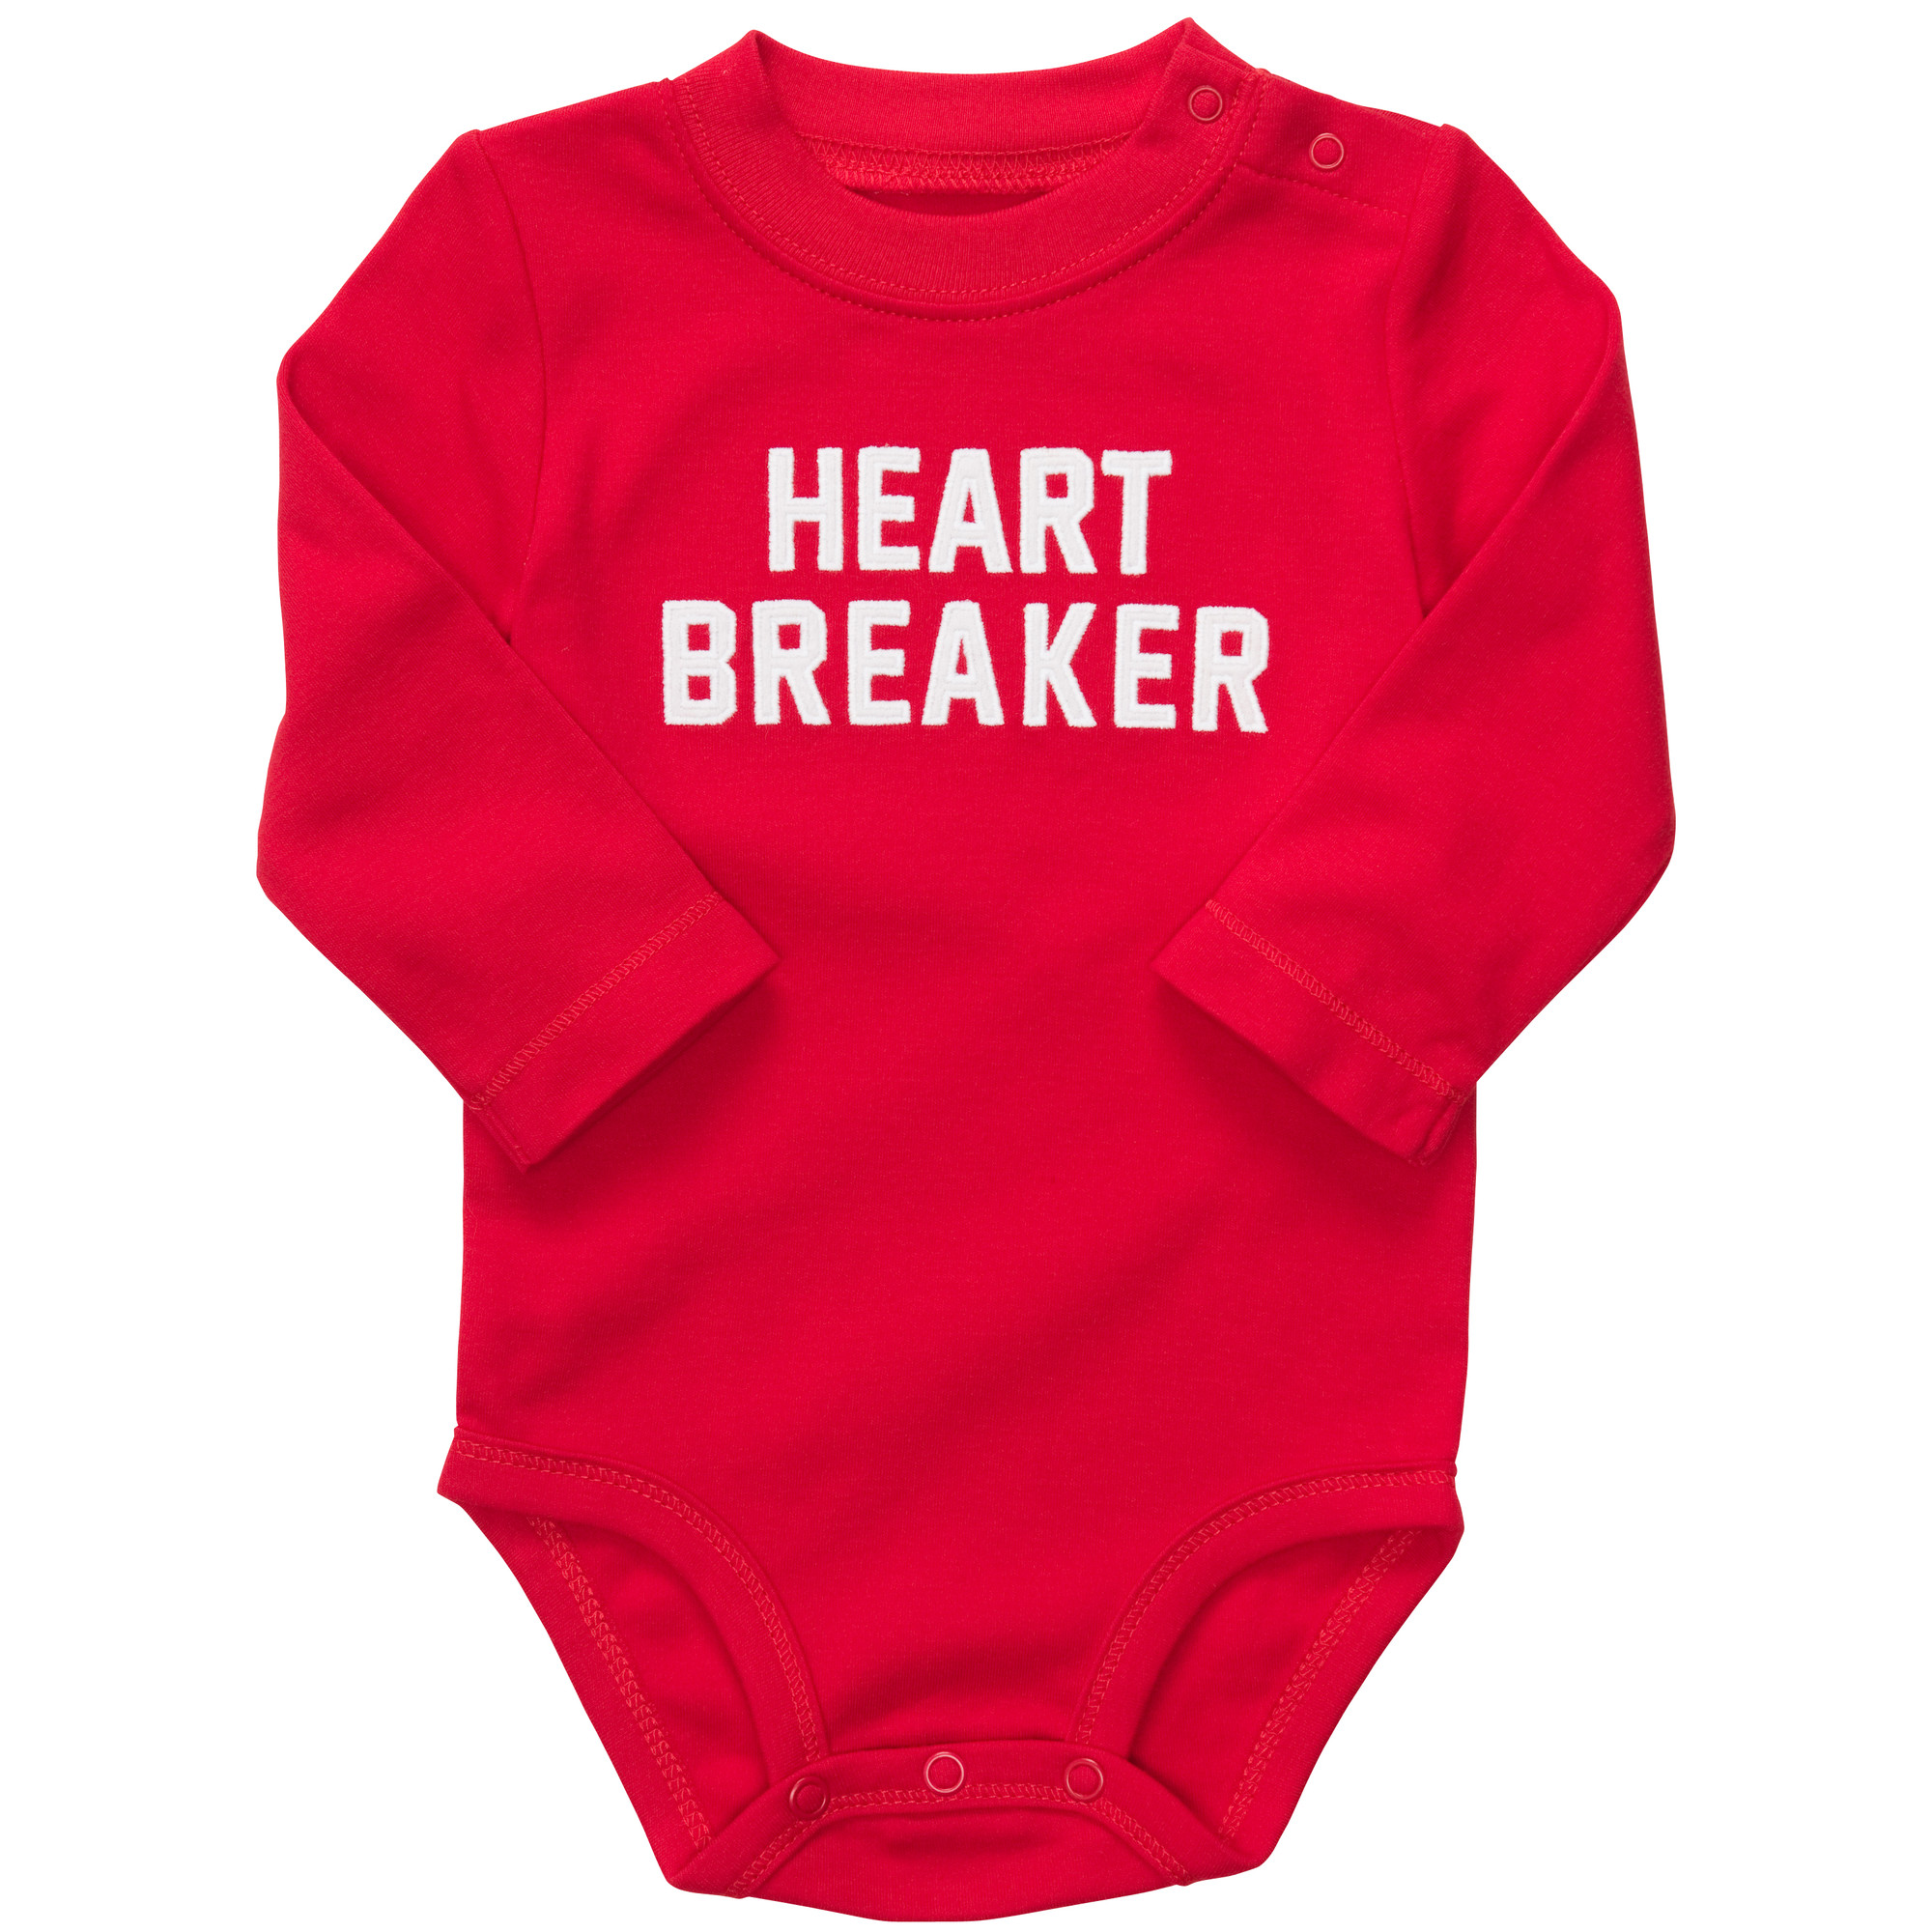 Valentineu0027s Day Outfit: Heartbreaker Bodysuit